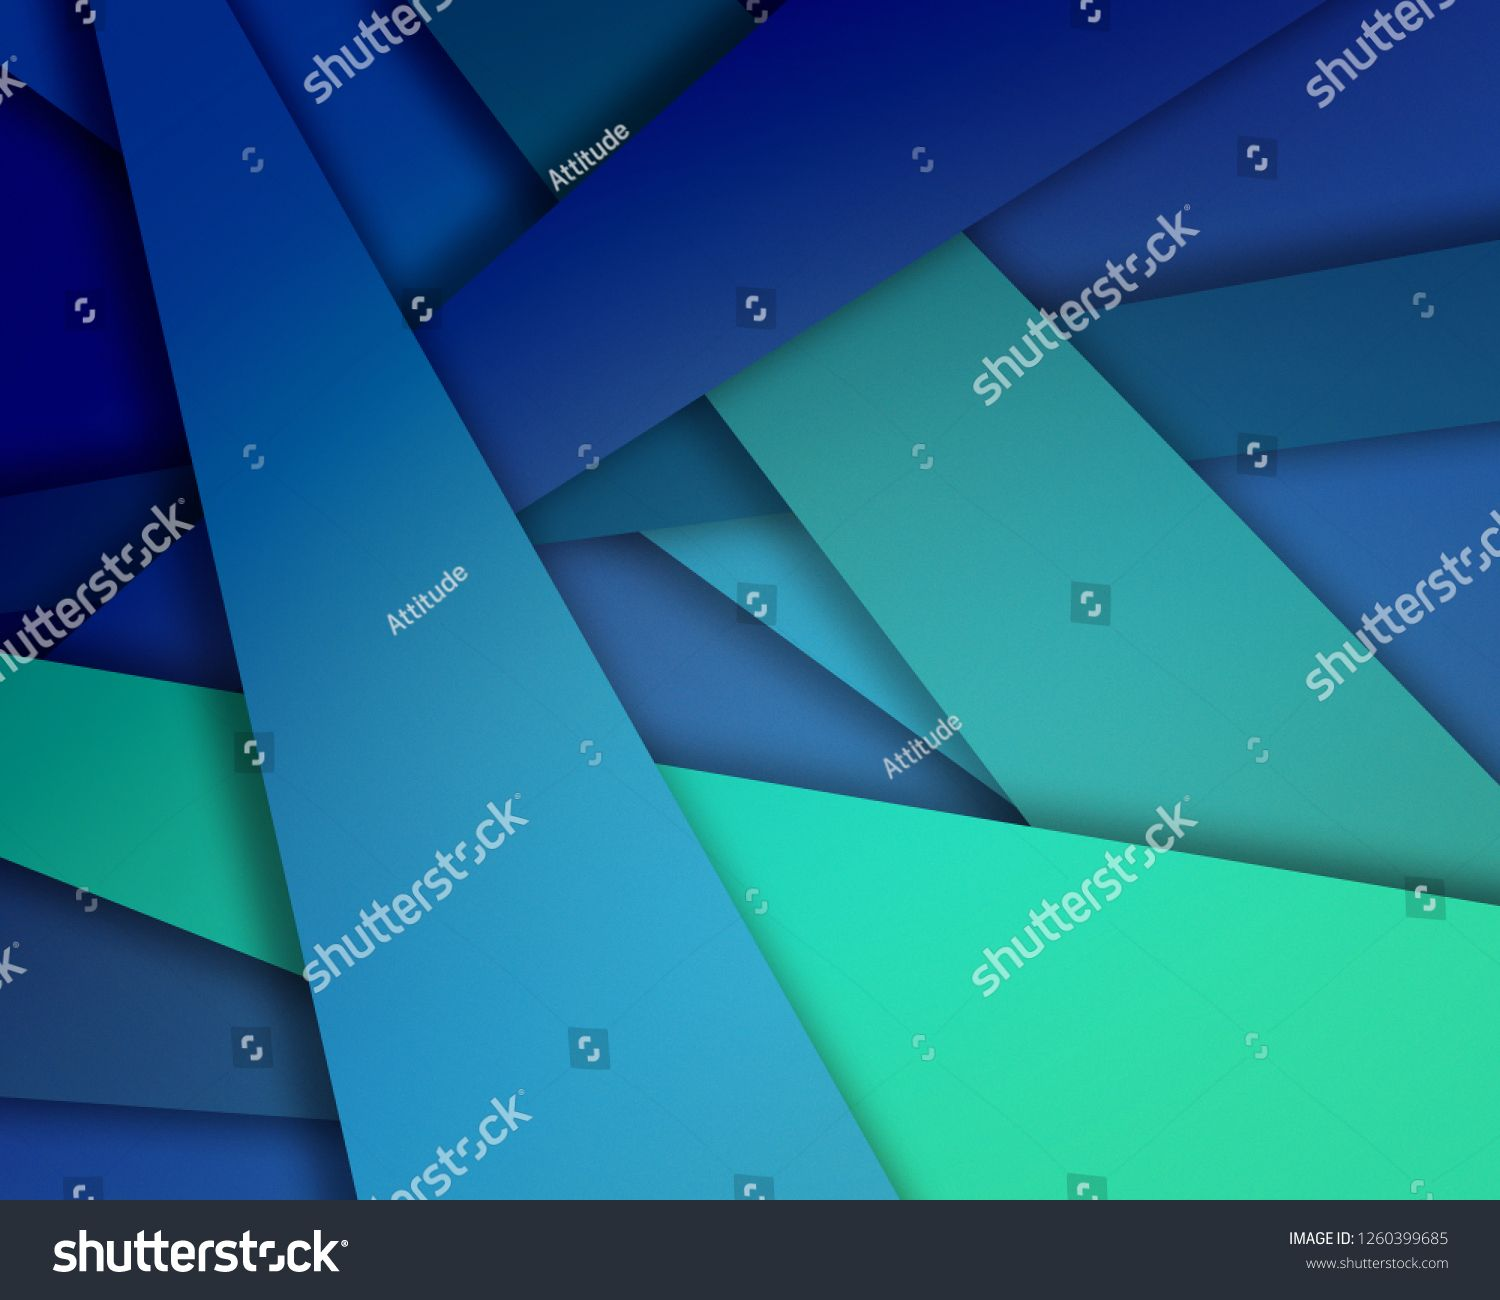 Abstract Blue And Green Background Design With Random Layered